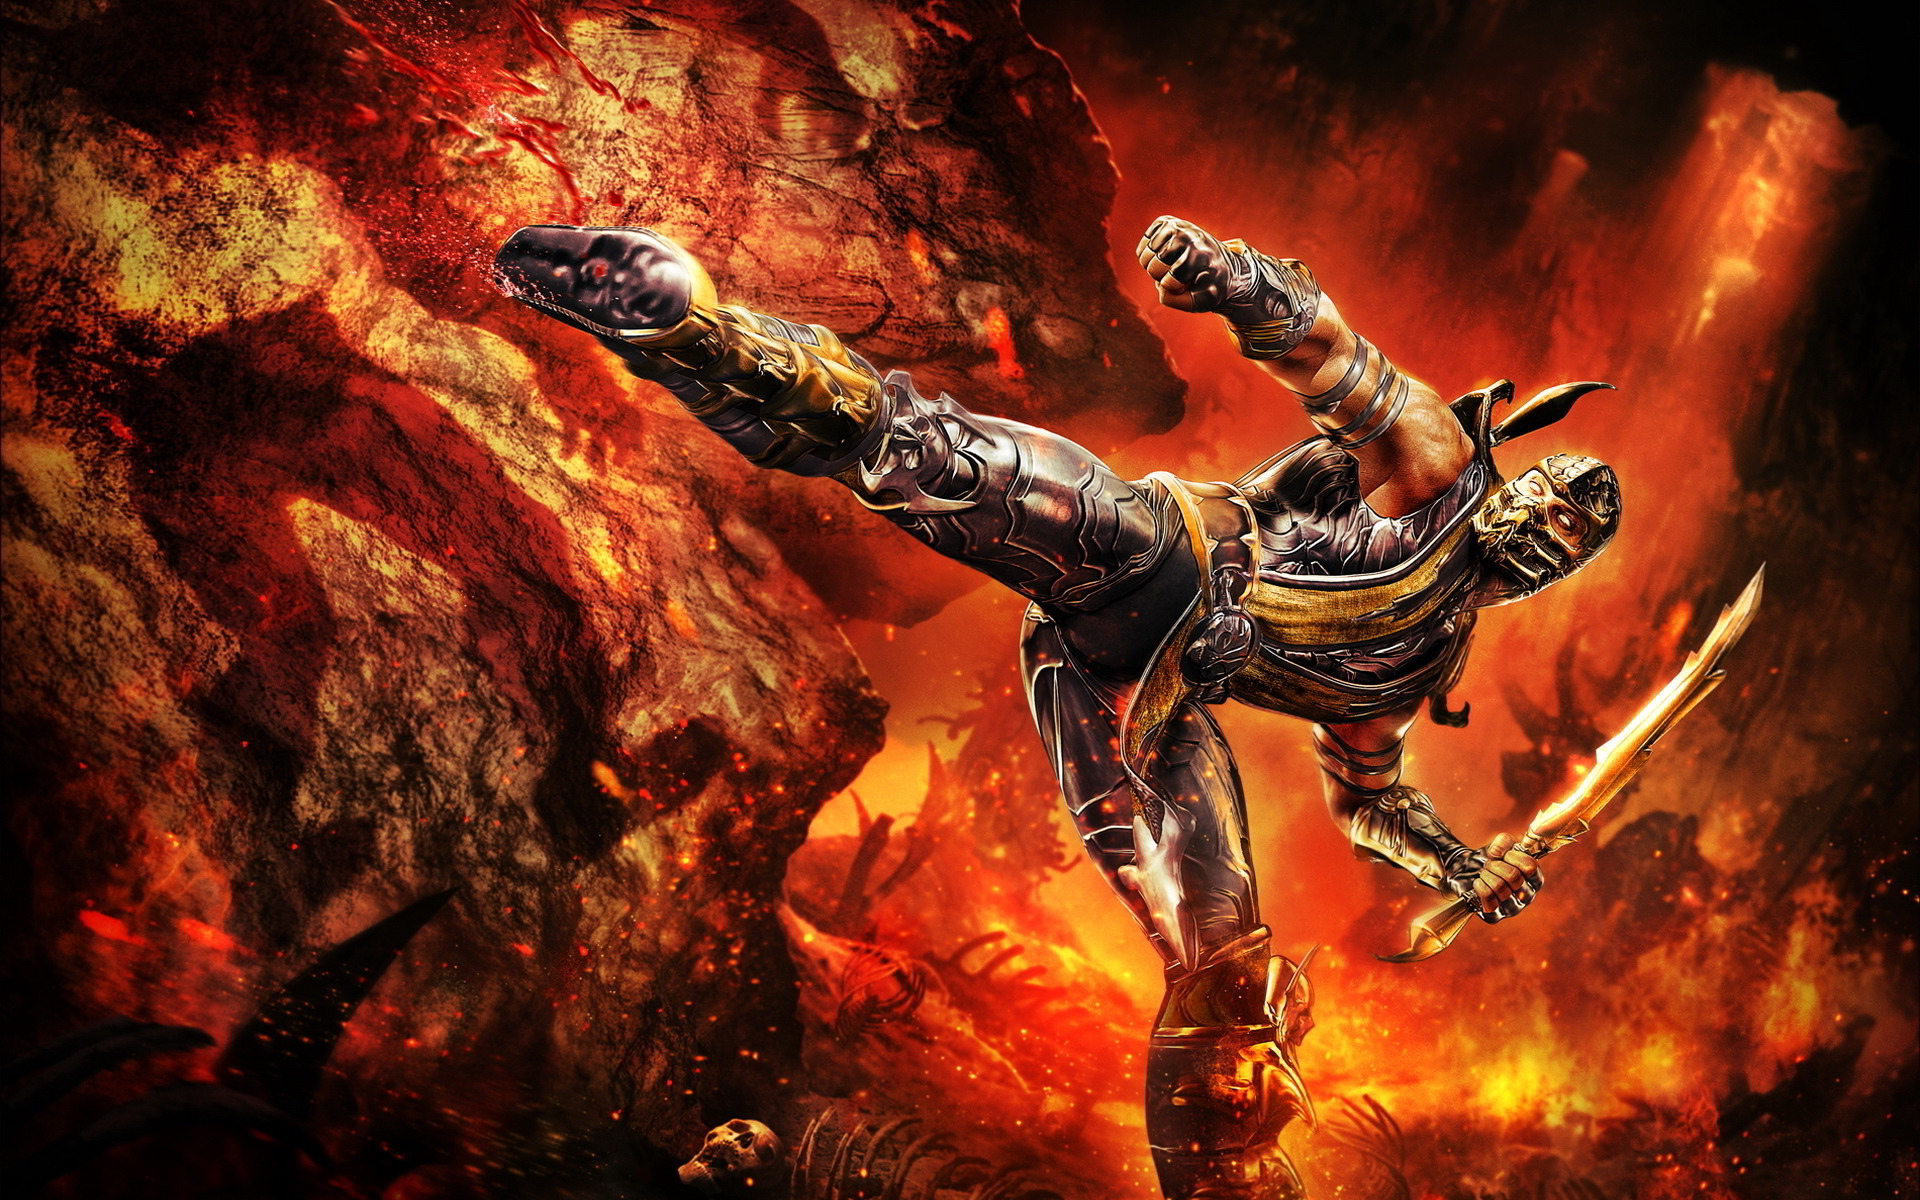 Mortal Combat Scorpion Wallpapers Pictures Photos Images. «